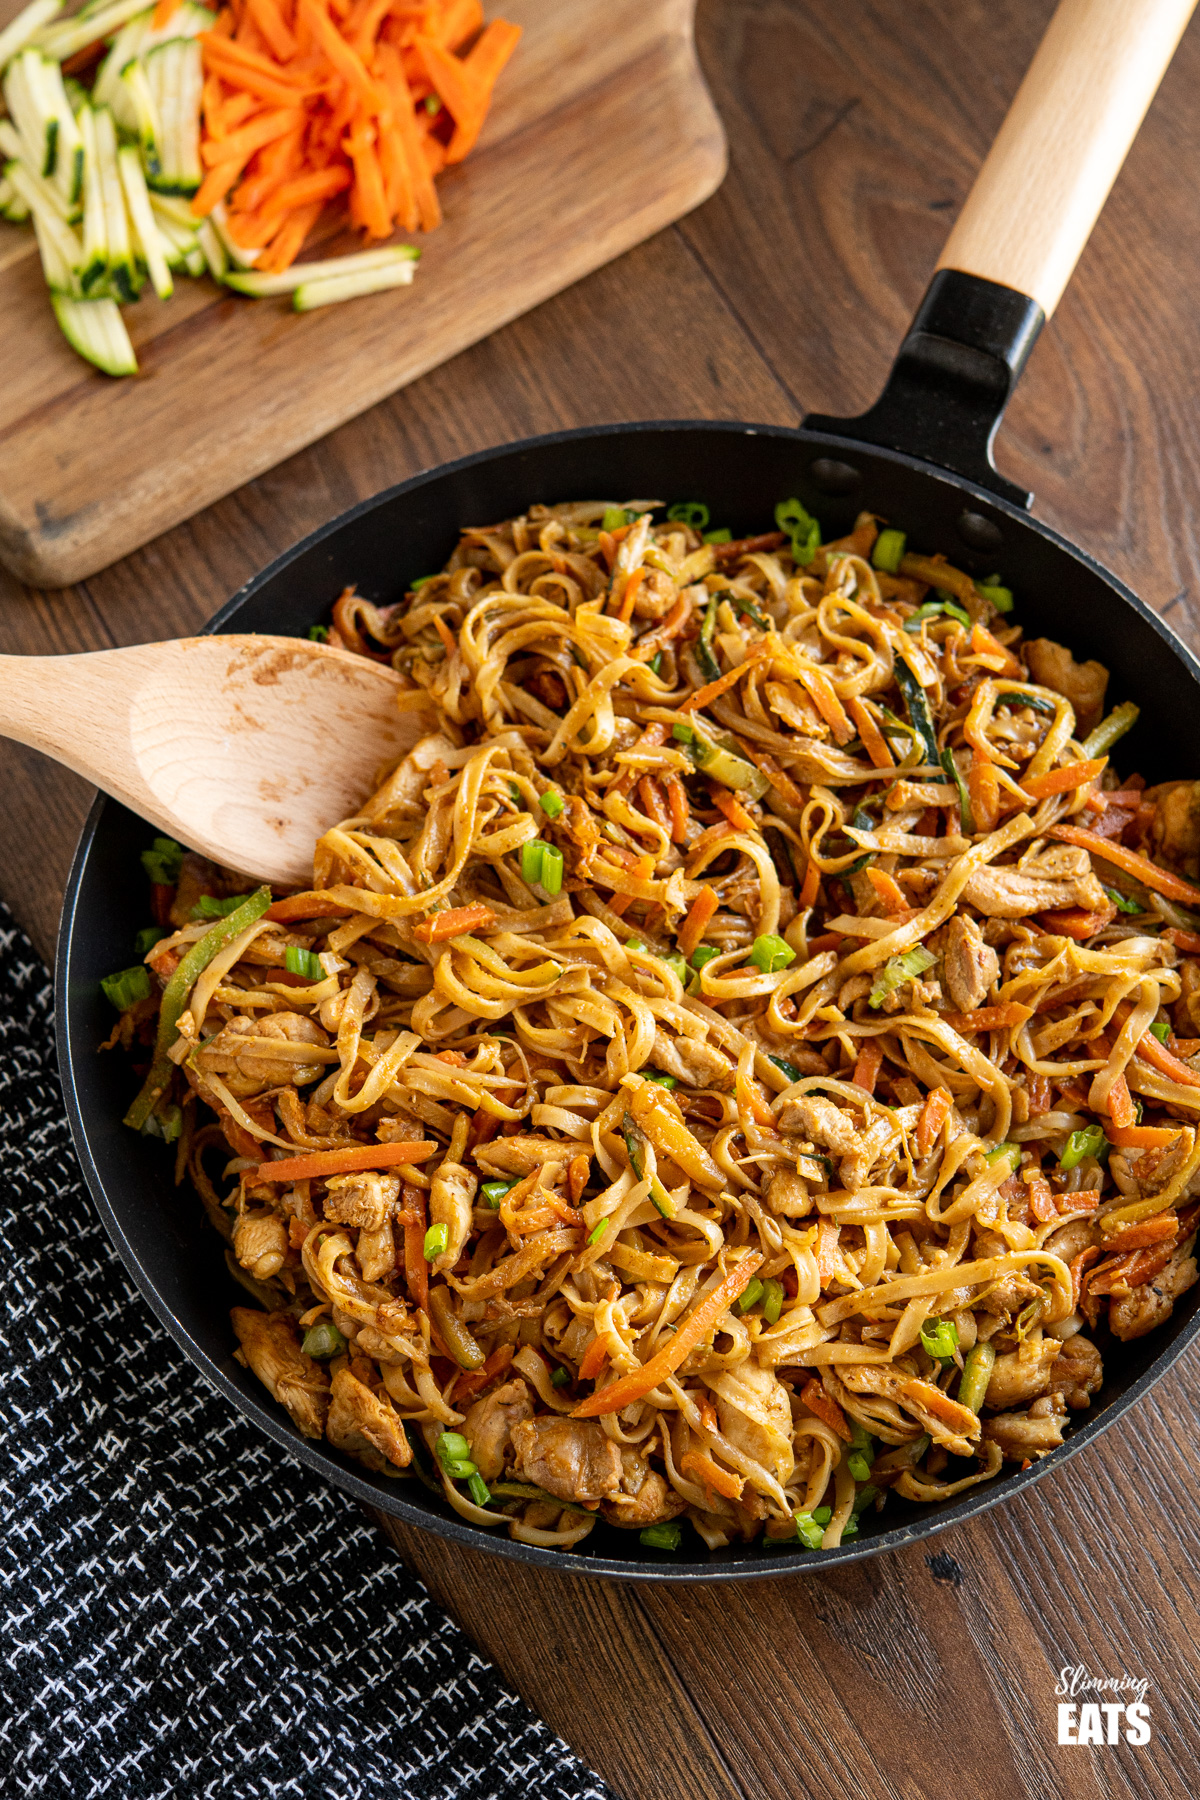 Easy Peanut Chicken Noodles in black frying pan with wooden handle, chopped board with carrots and zucchini in background